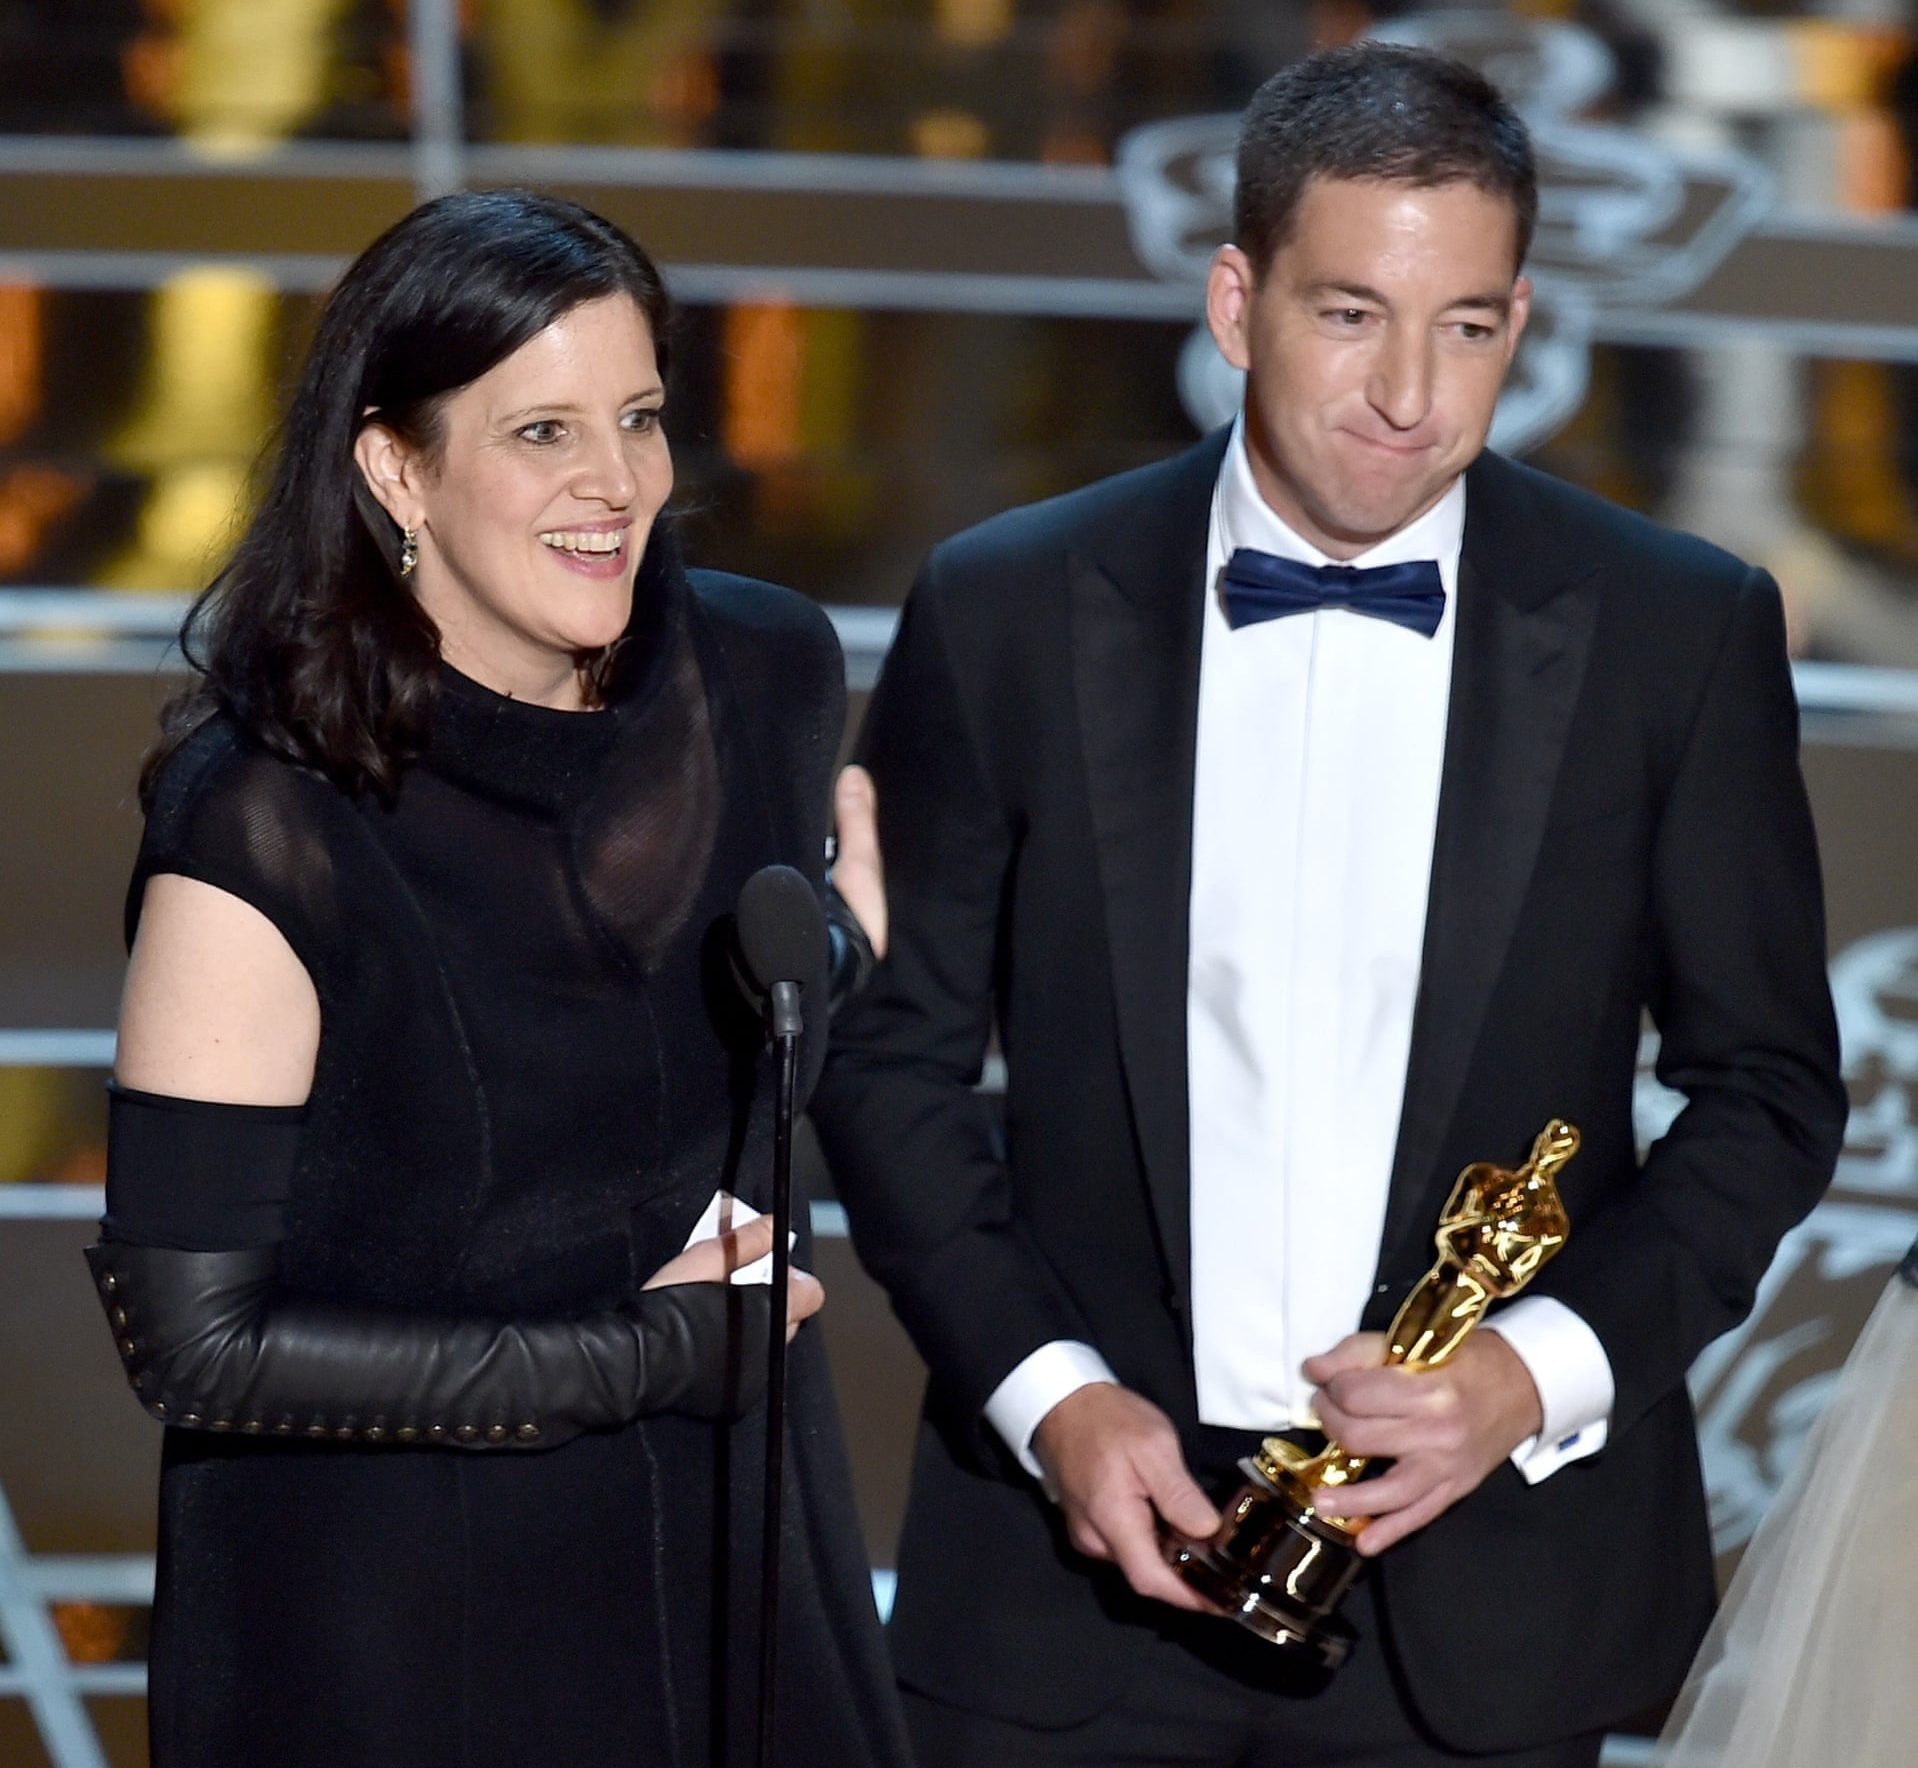 Laura Poitras and Glenn Greenwald received the Oscar for Best Documentary Feature at the 2015 Academy Awards.